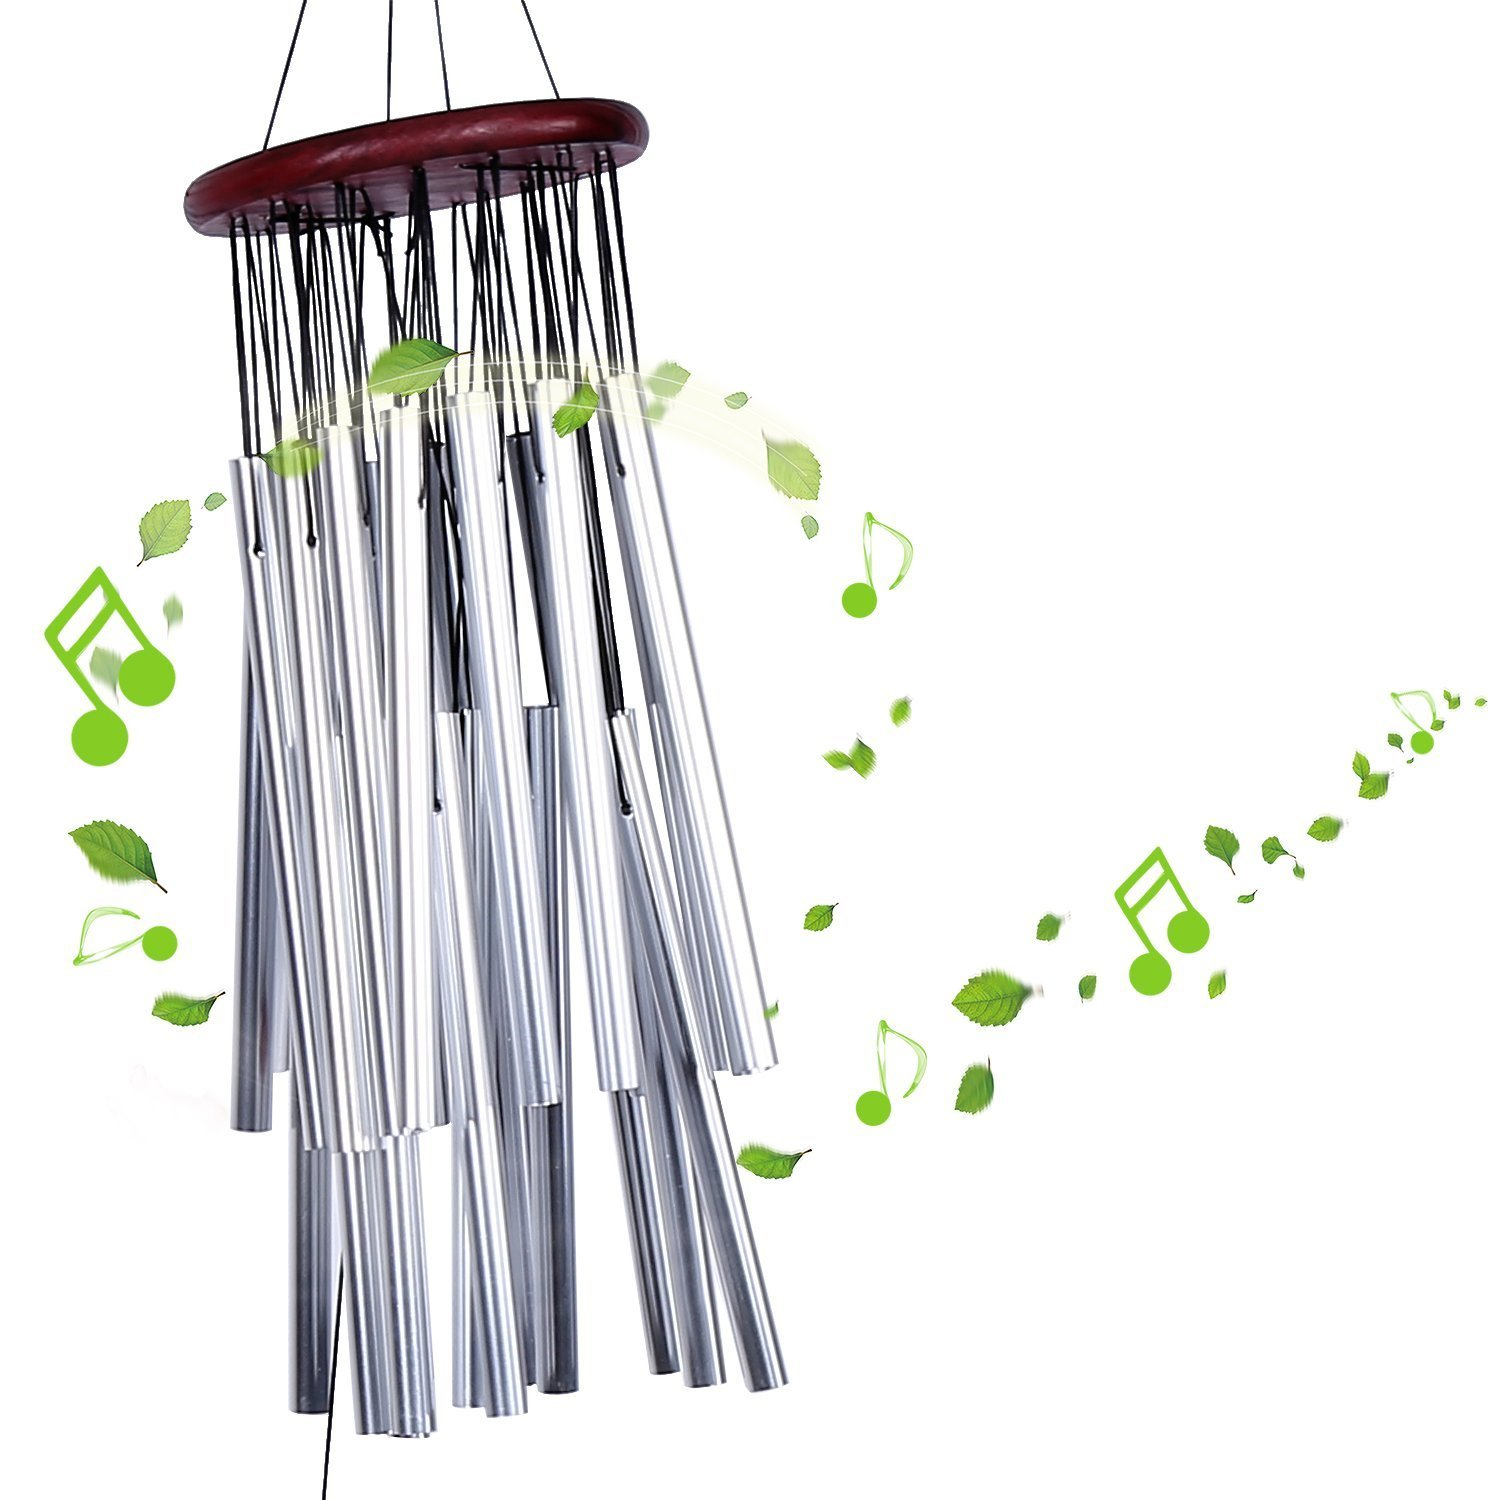 Yosoo Large Wind Chime 27 Tubes Silver Metal Tube Church Home Garden Hanging Decorations Outdoor Bells Windchime Bells